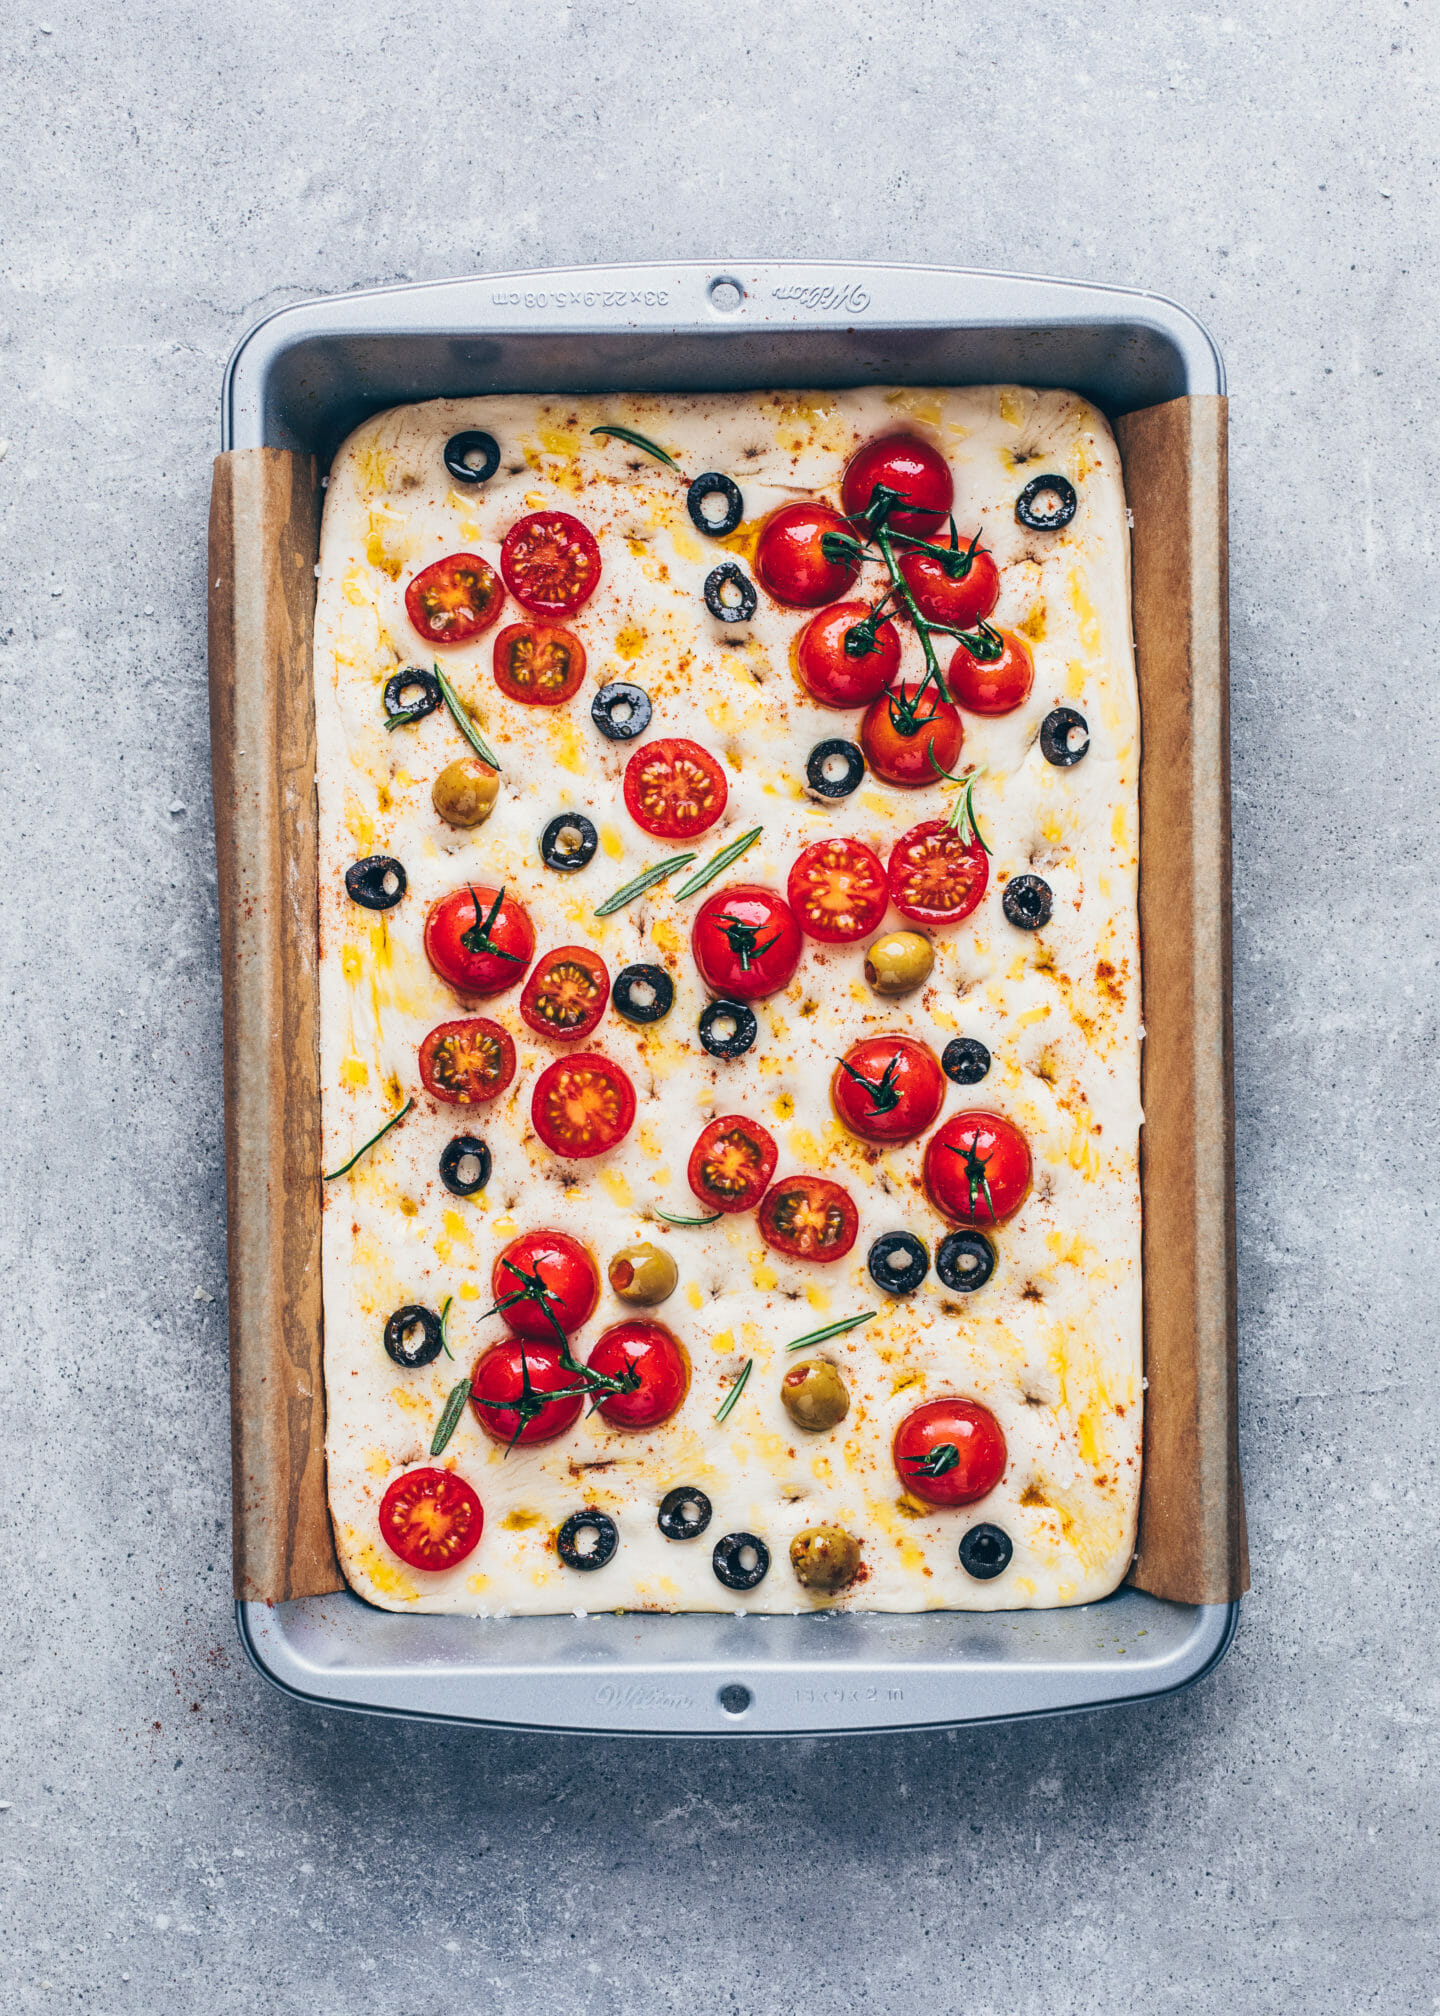 focaccia bread with tomatoes, olives, rosemary, olive oil, and sea salt